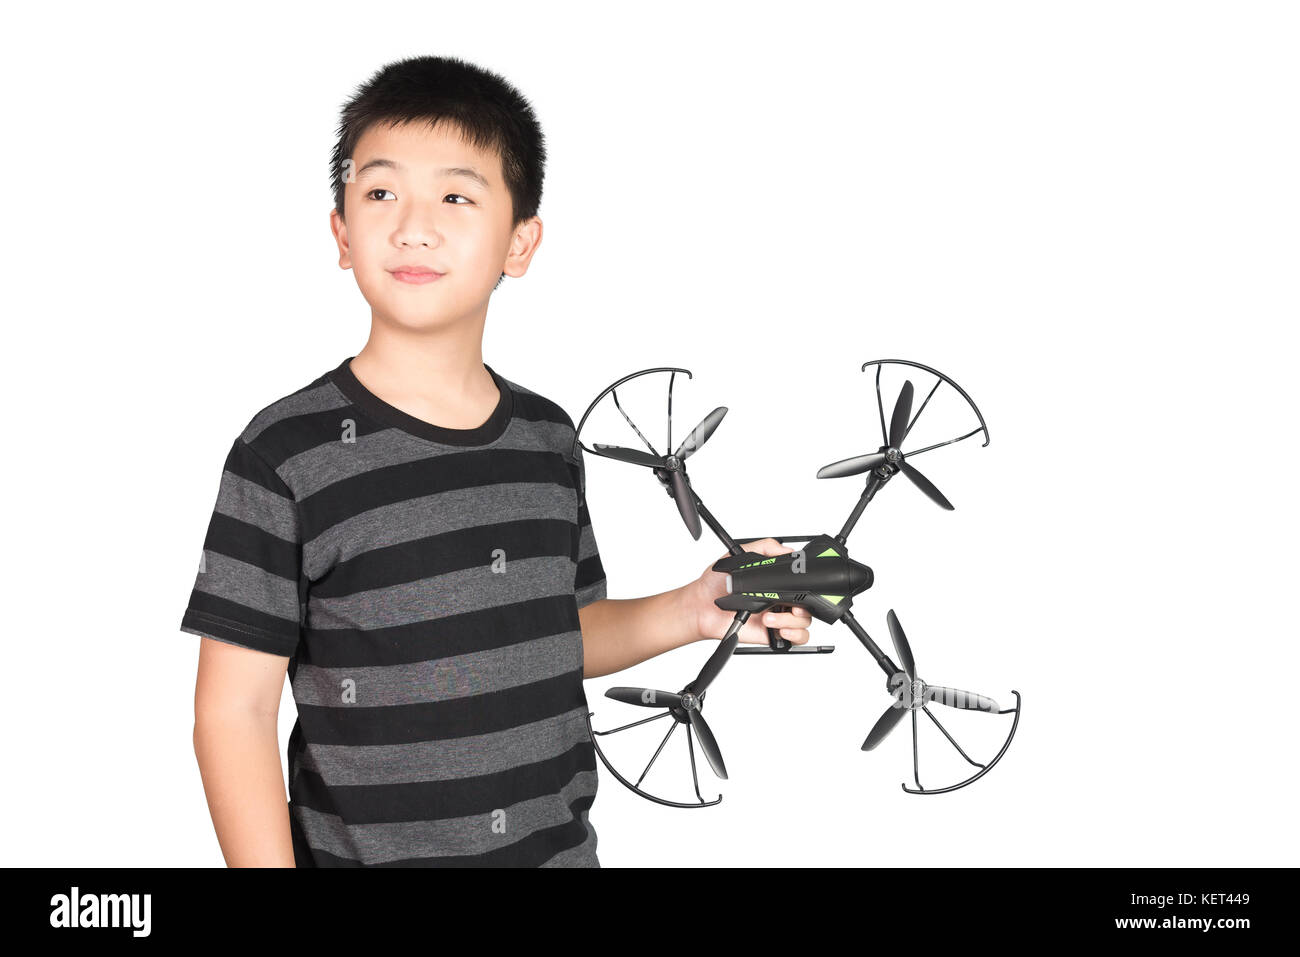 Asian boy holding hexacopter drone or quadrocopter toy in hand, studio shot isolated on white background. - Stock Image